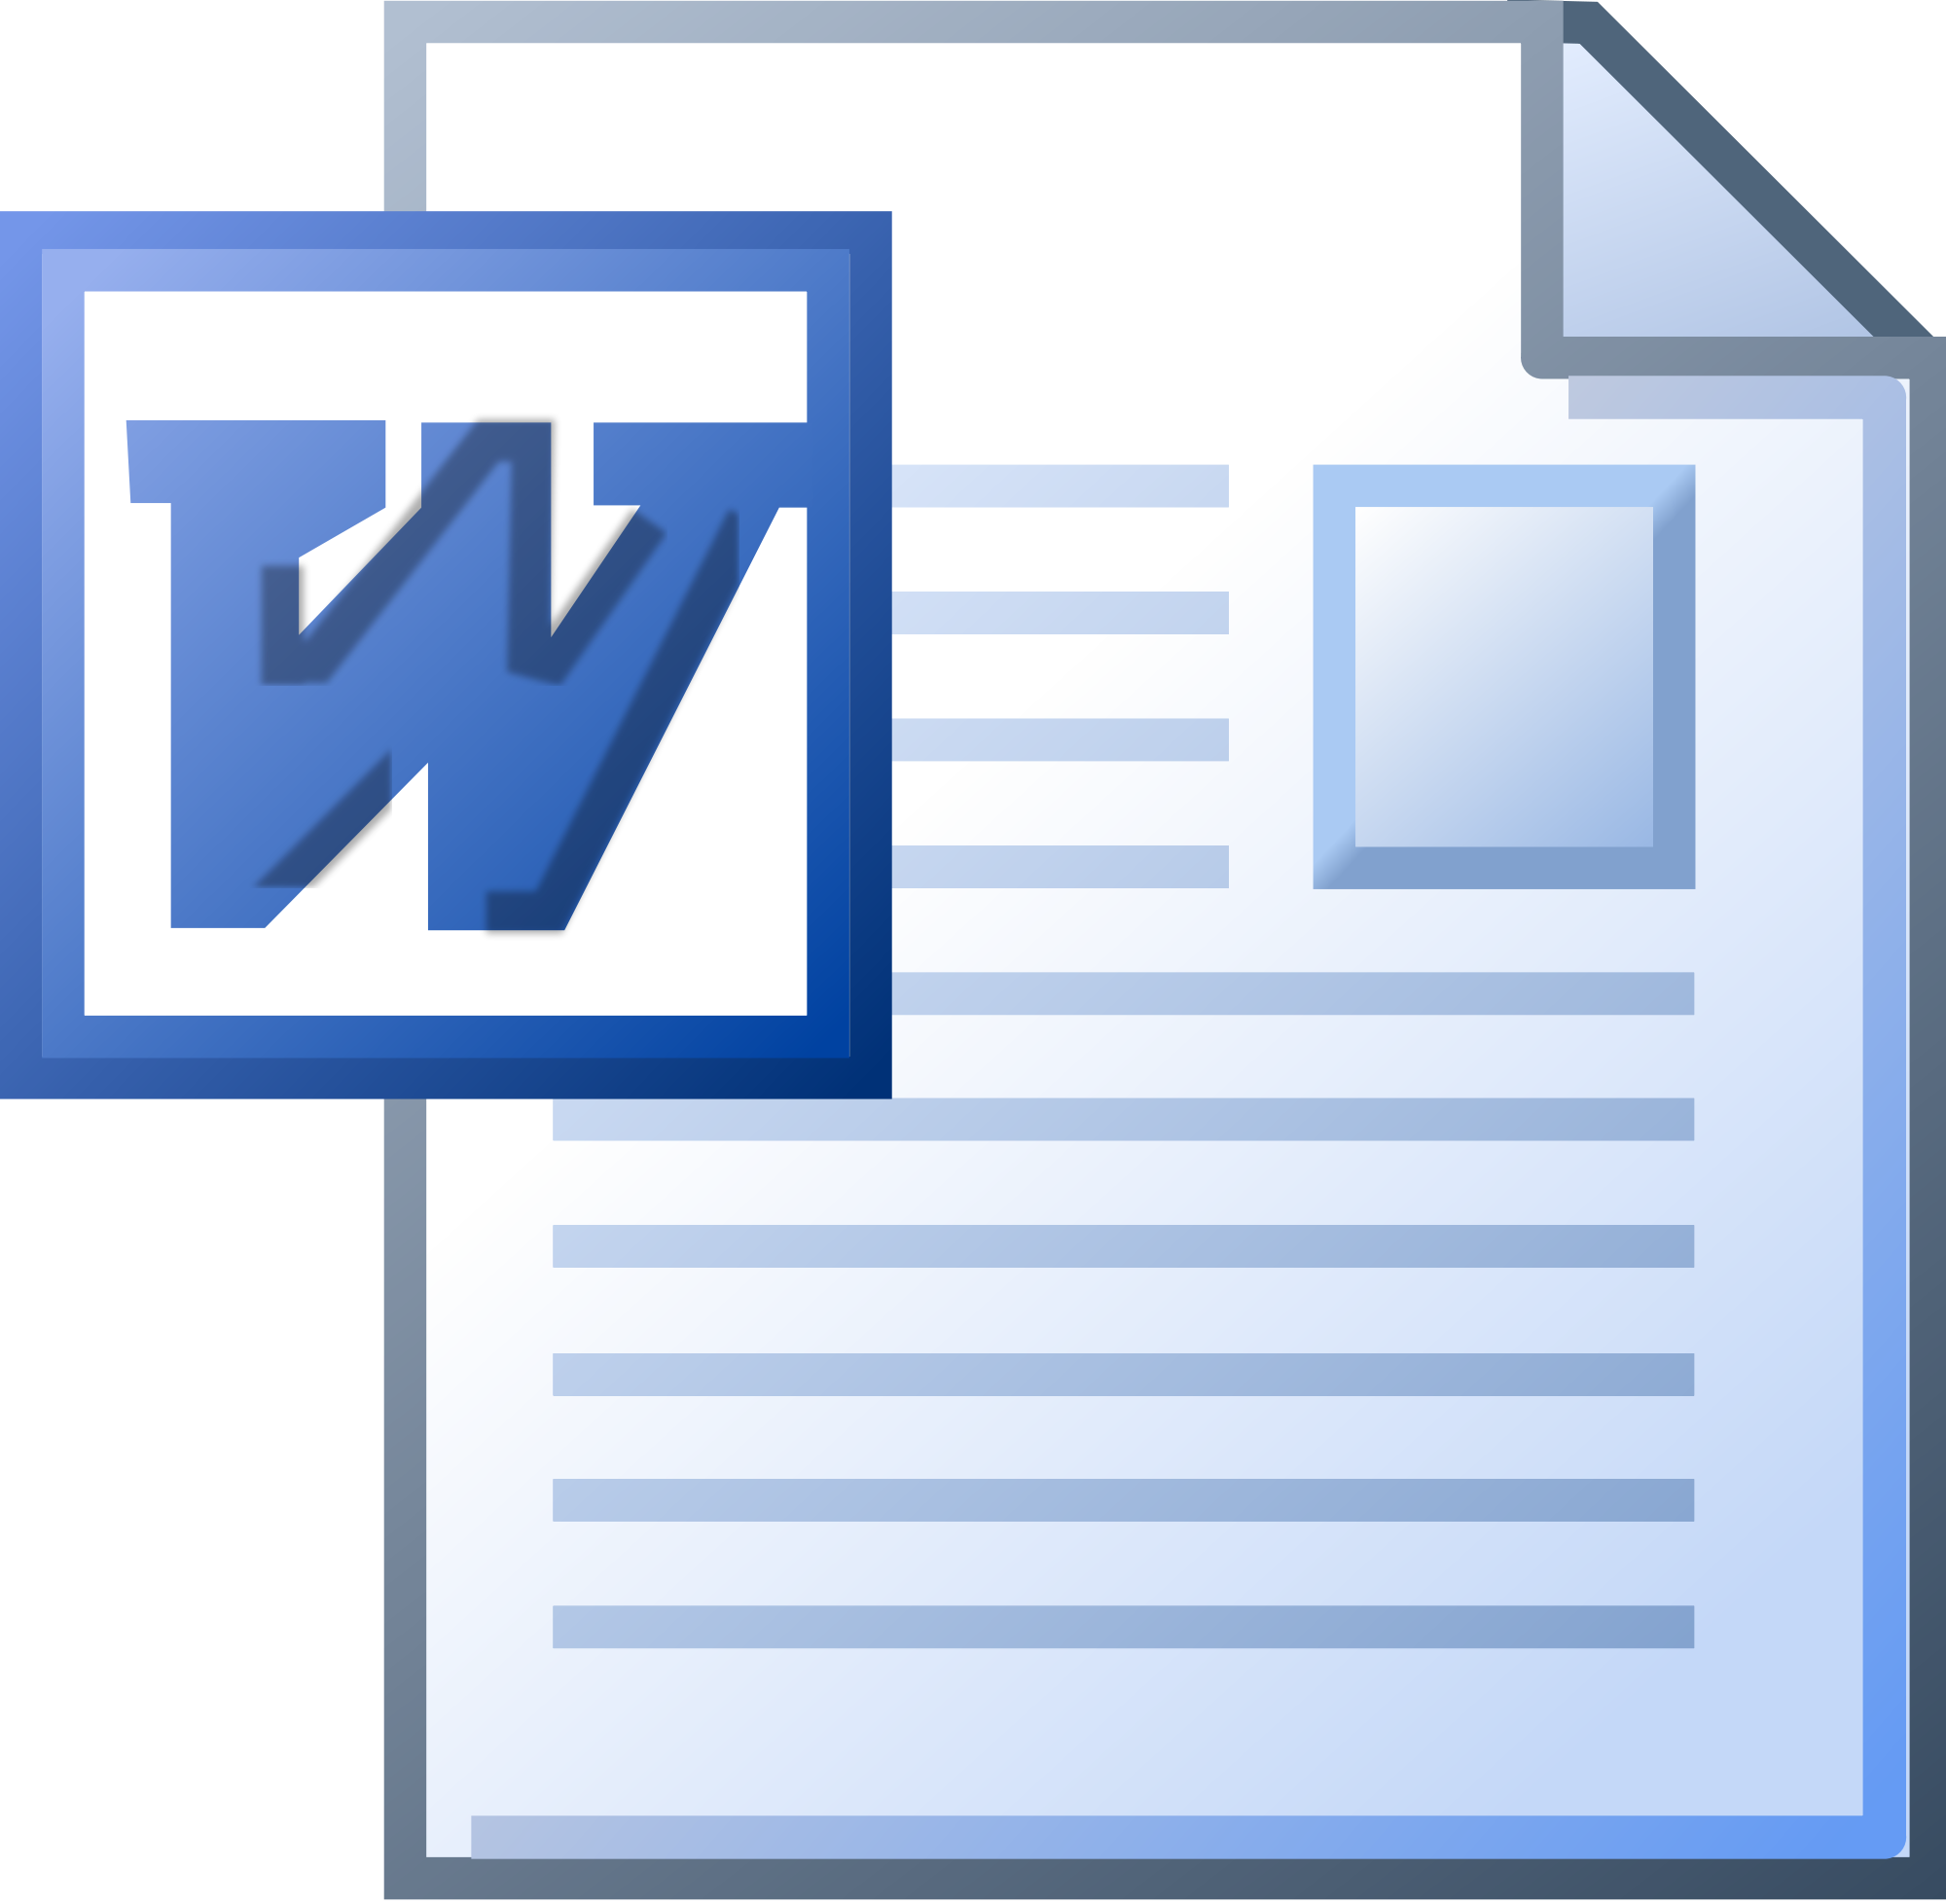 word-icon-png-4004